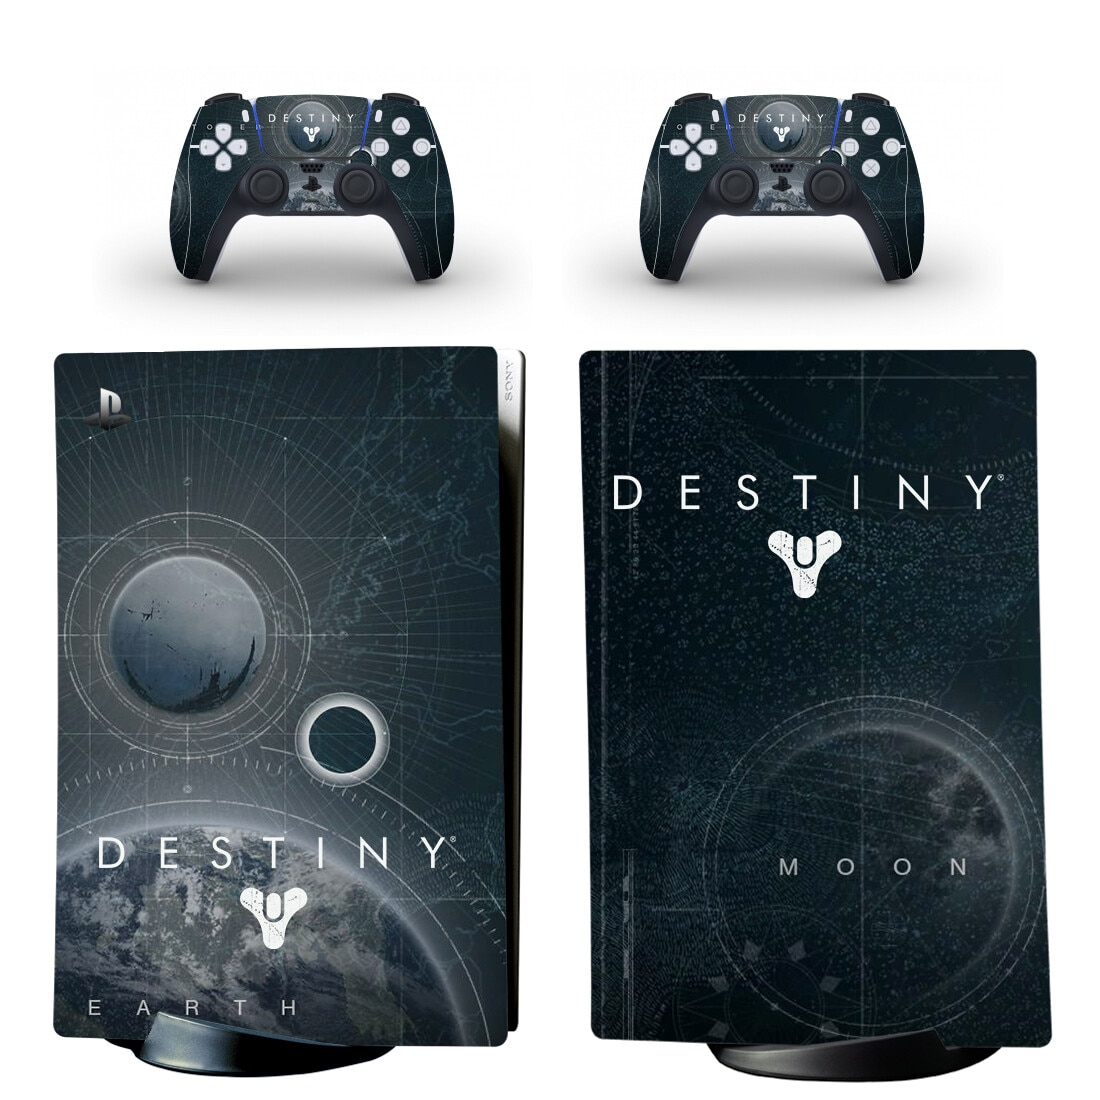 Destiny PS5 Digital Edition Skin Sticker Decal Cover for PlayStation 5 Console and 2 Controllers PS5 Skin Sticker